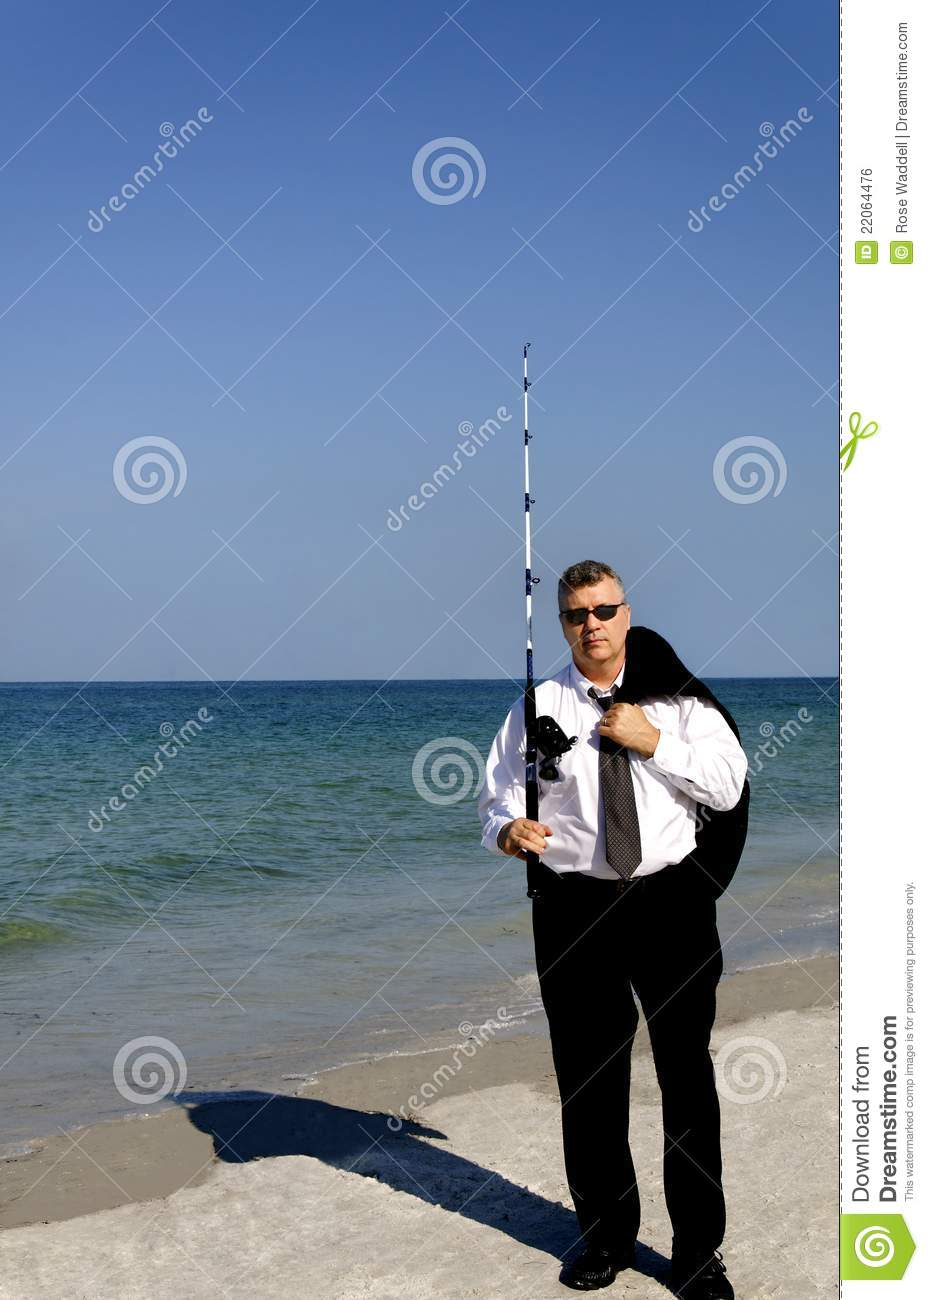 Business man with fishing pole stock photo image 22064476 for Fishing times free